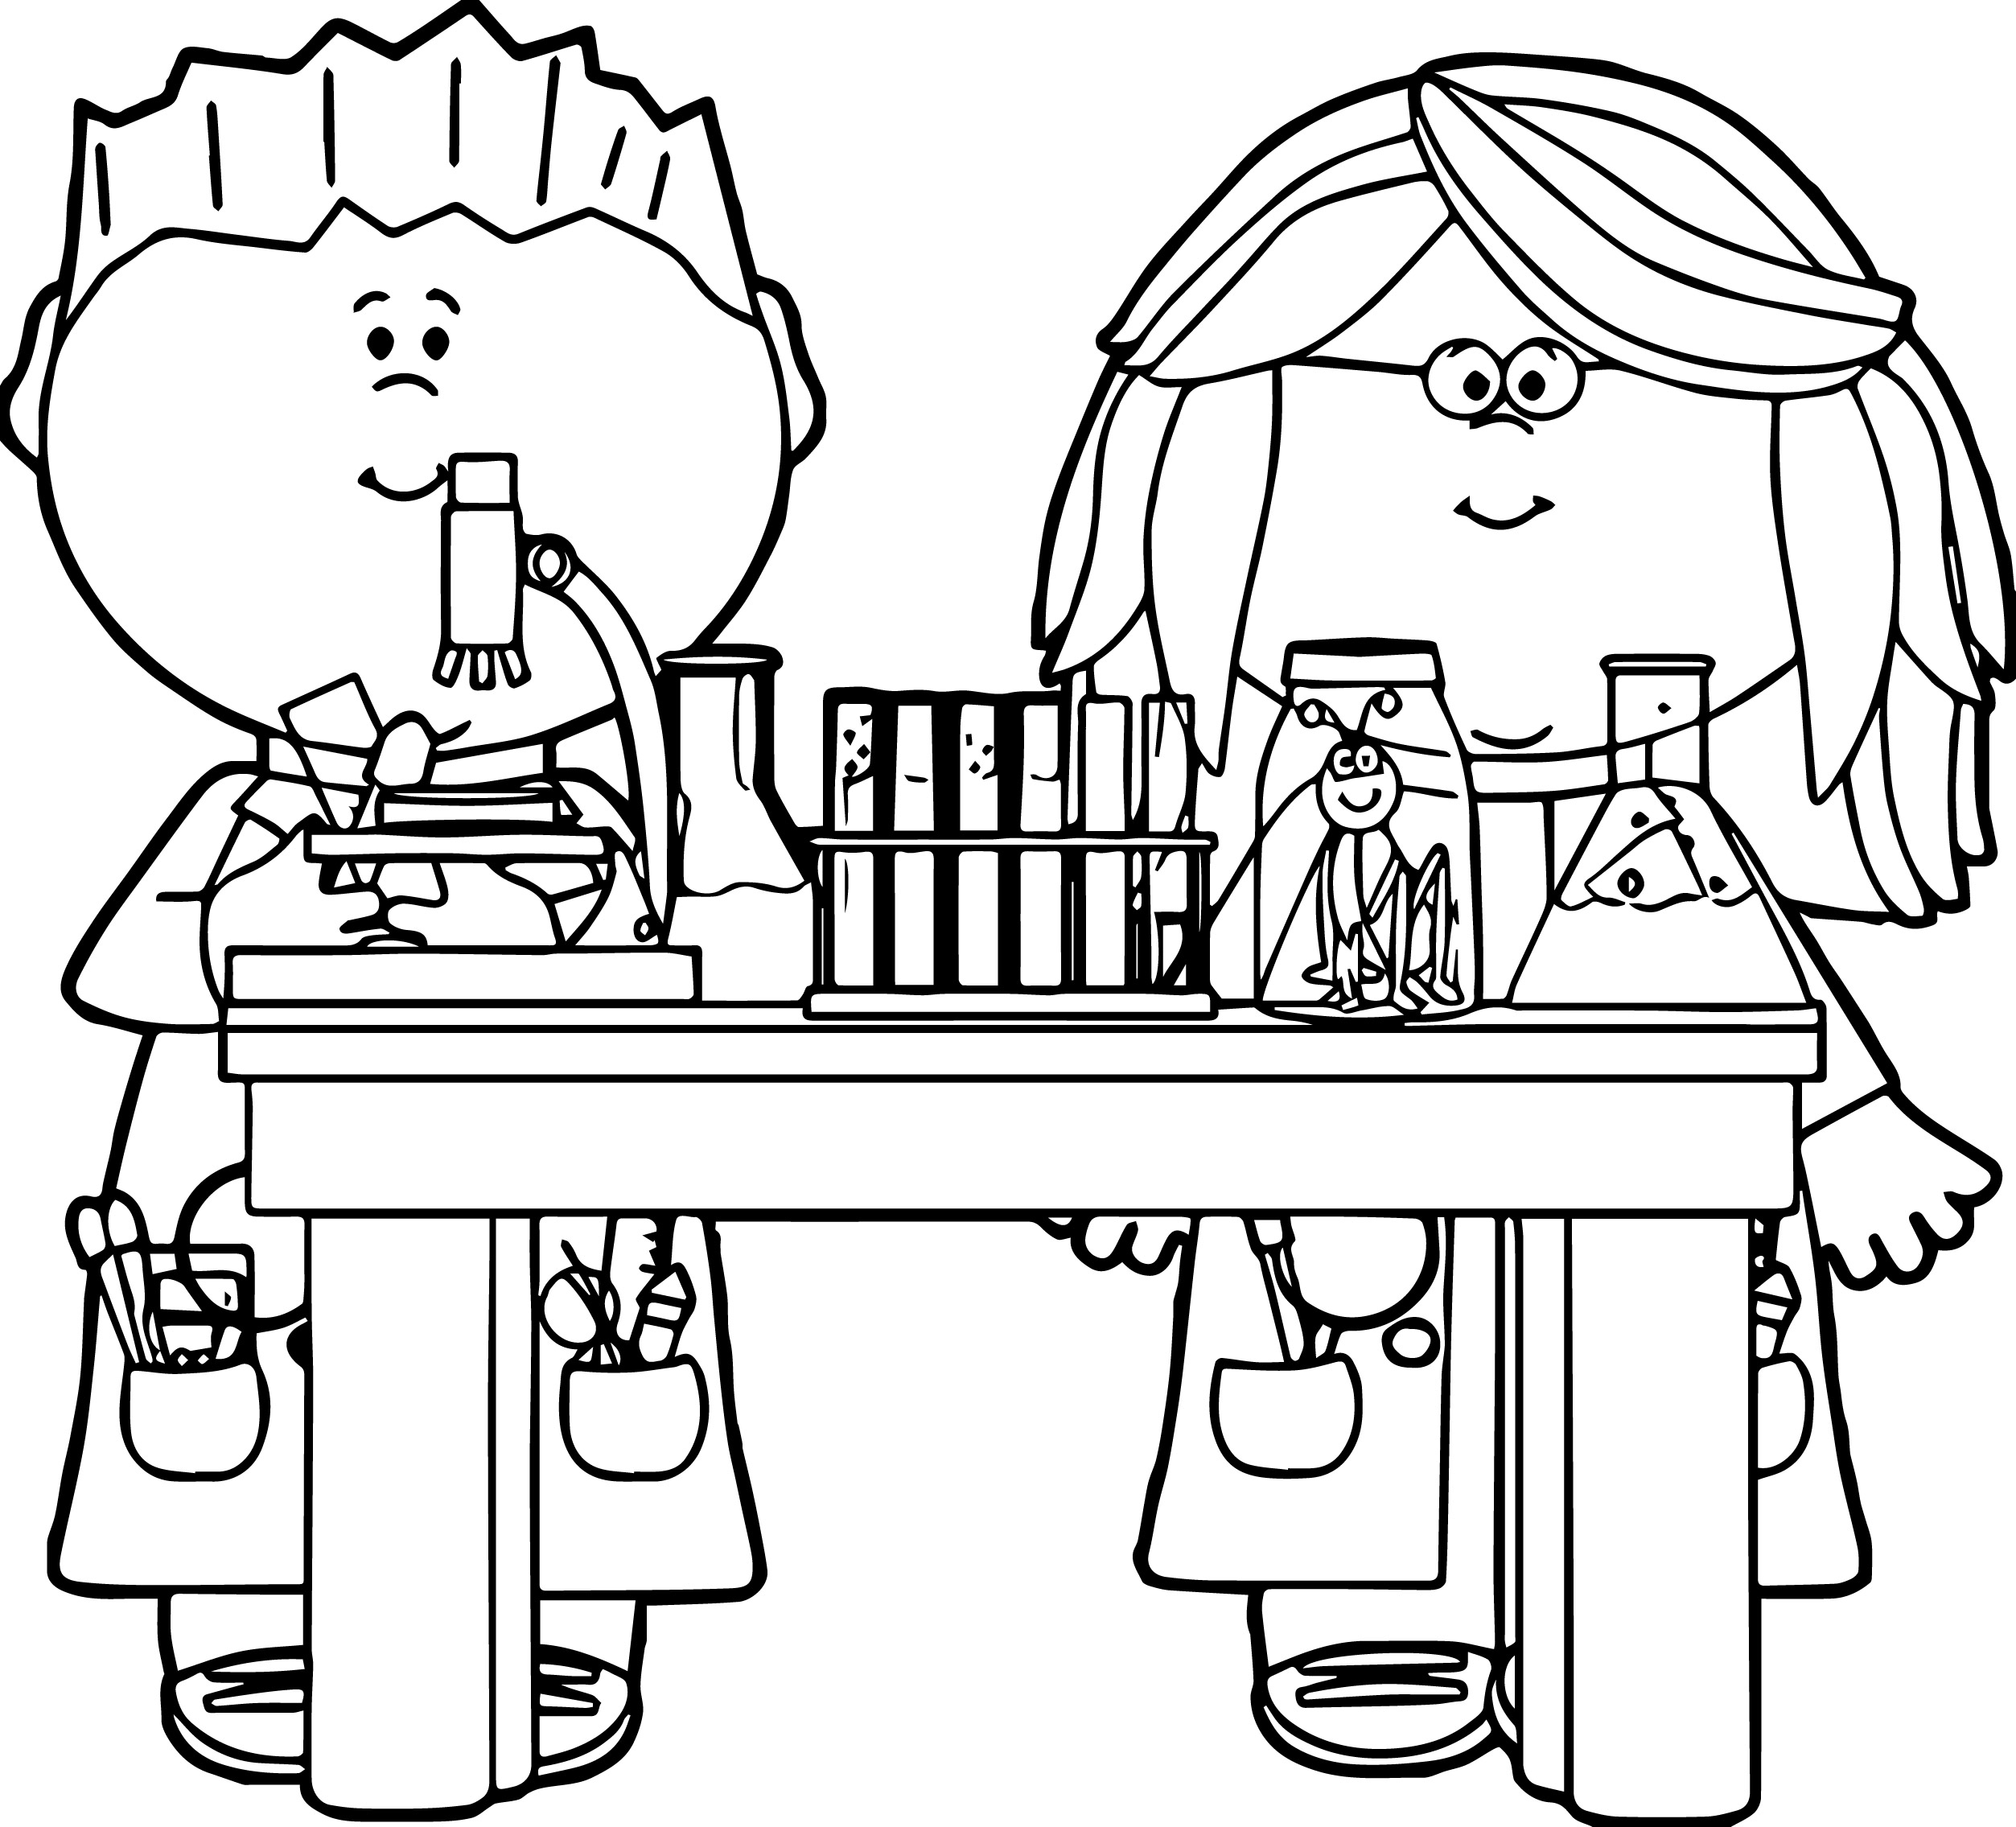 2506x2271 Kids In Science Class Clip Art Kids In Science Class Vector Image